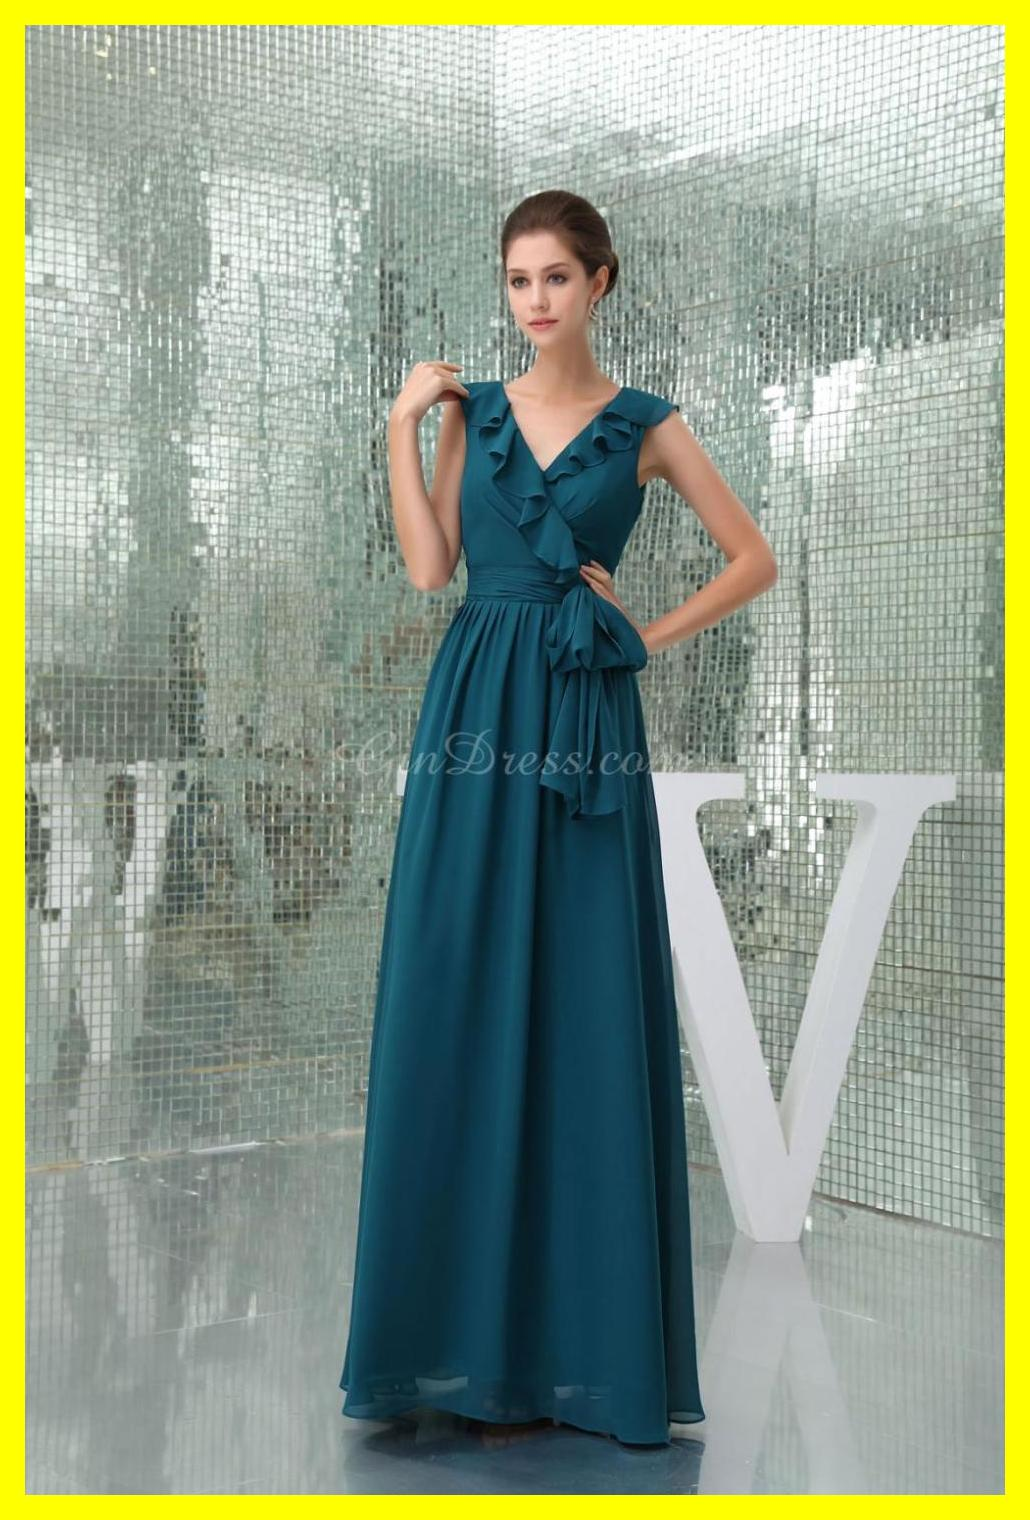 Bridesmaid dresses south africa white uk junior bridesmaids bridesmaid dresses south africa white uk junior bridesmaids cornflower blue second hand junior built in bra sleeveles 2015 cheap in bridesmaid dresses from ombrellifo Choice Image